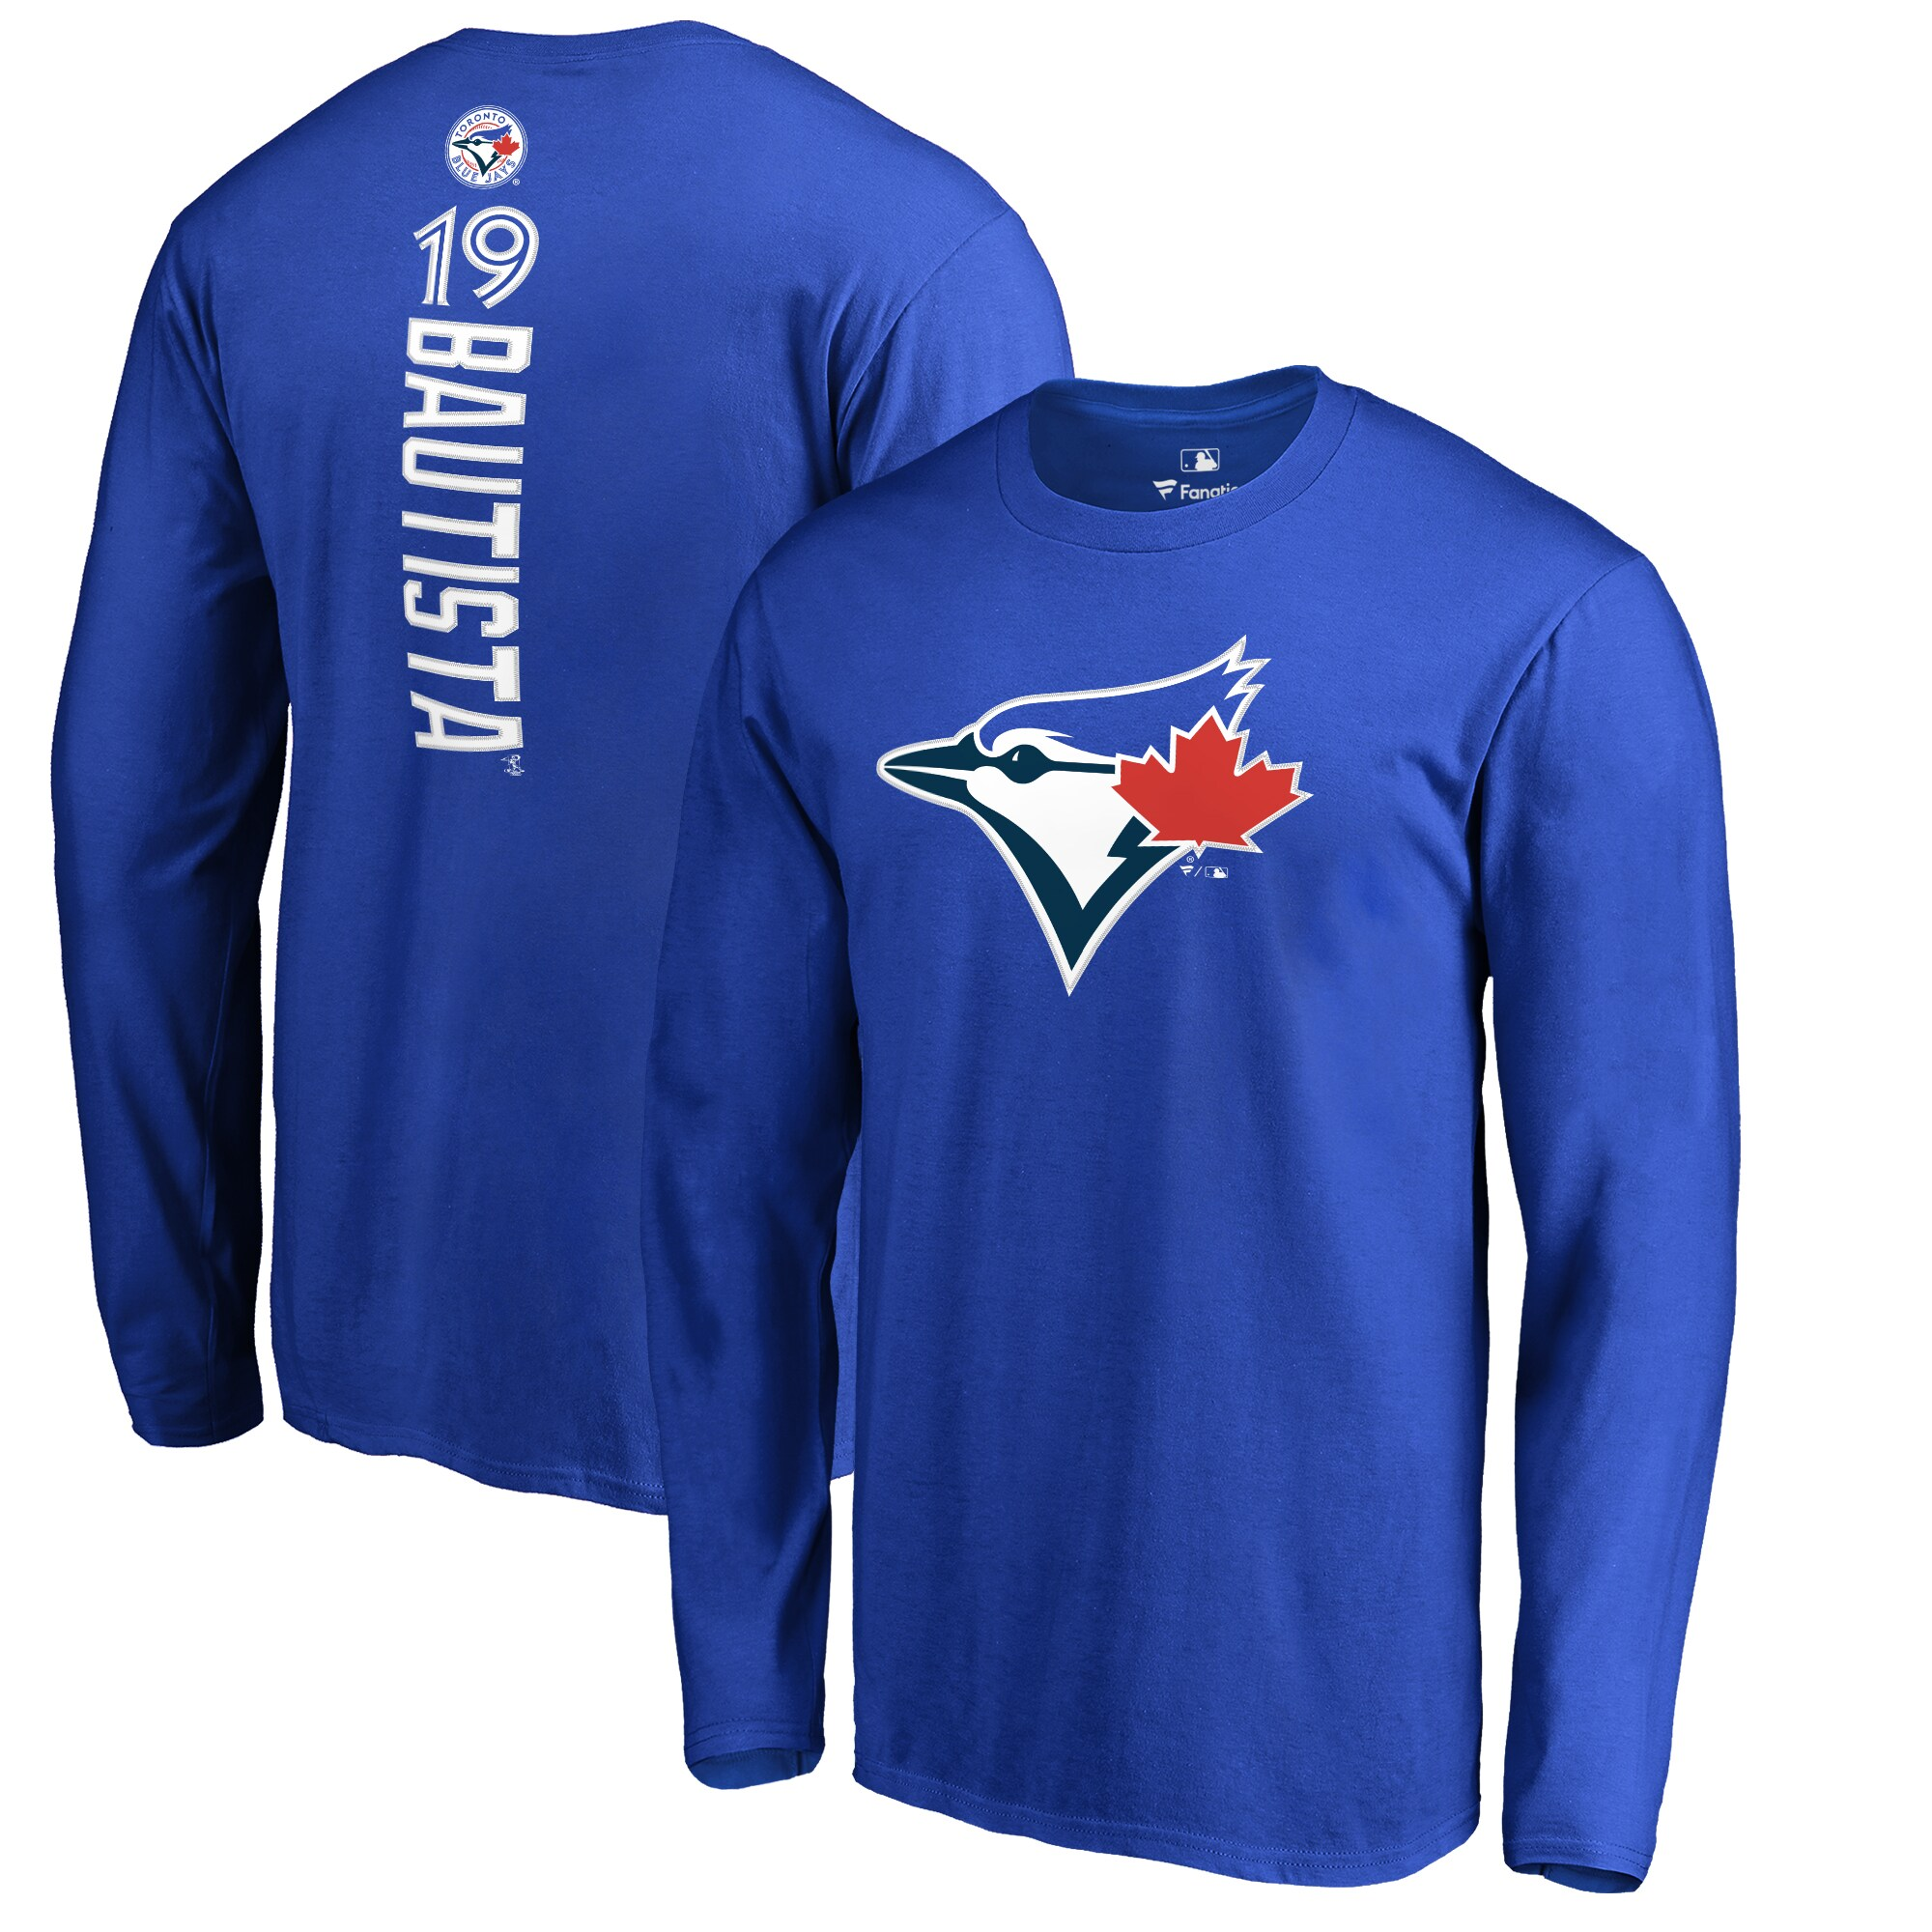 Jose Bautista Toronto Blue Jays Backer Name & Number Long Sleeve T-Shirt - Royal